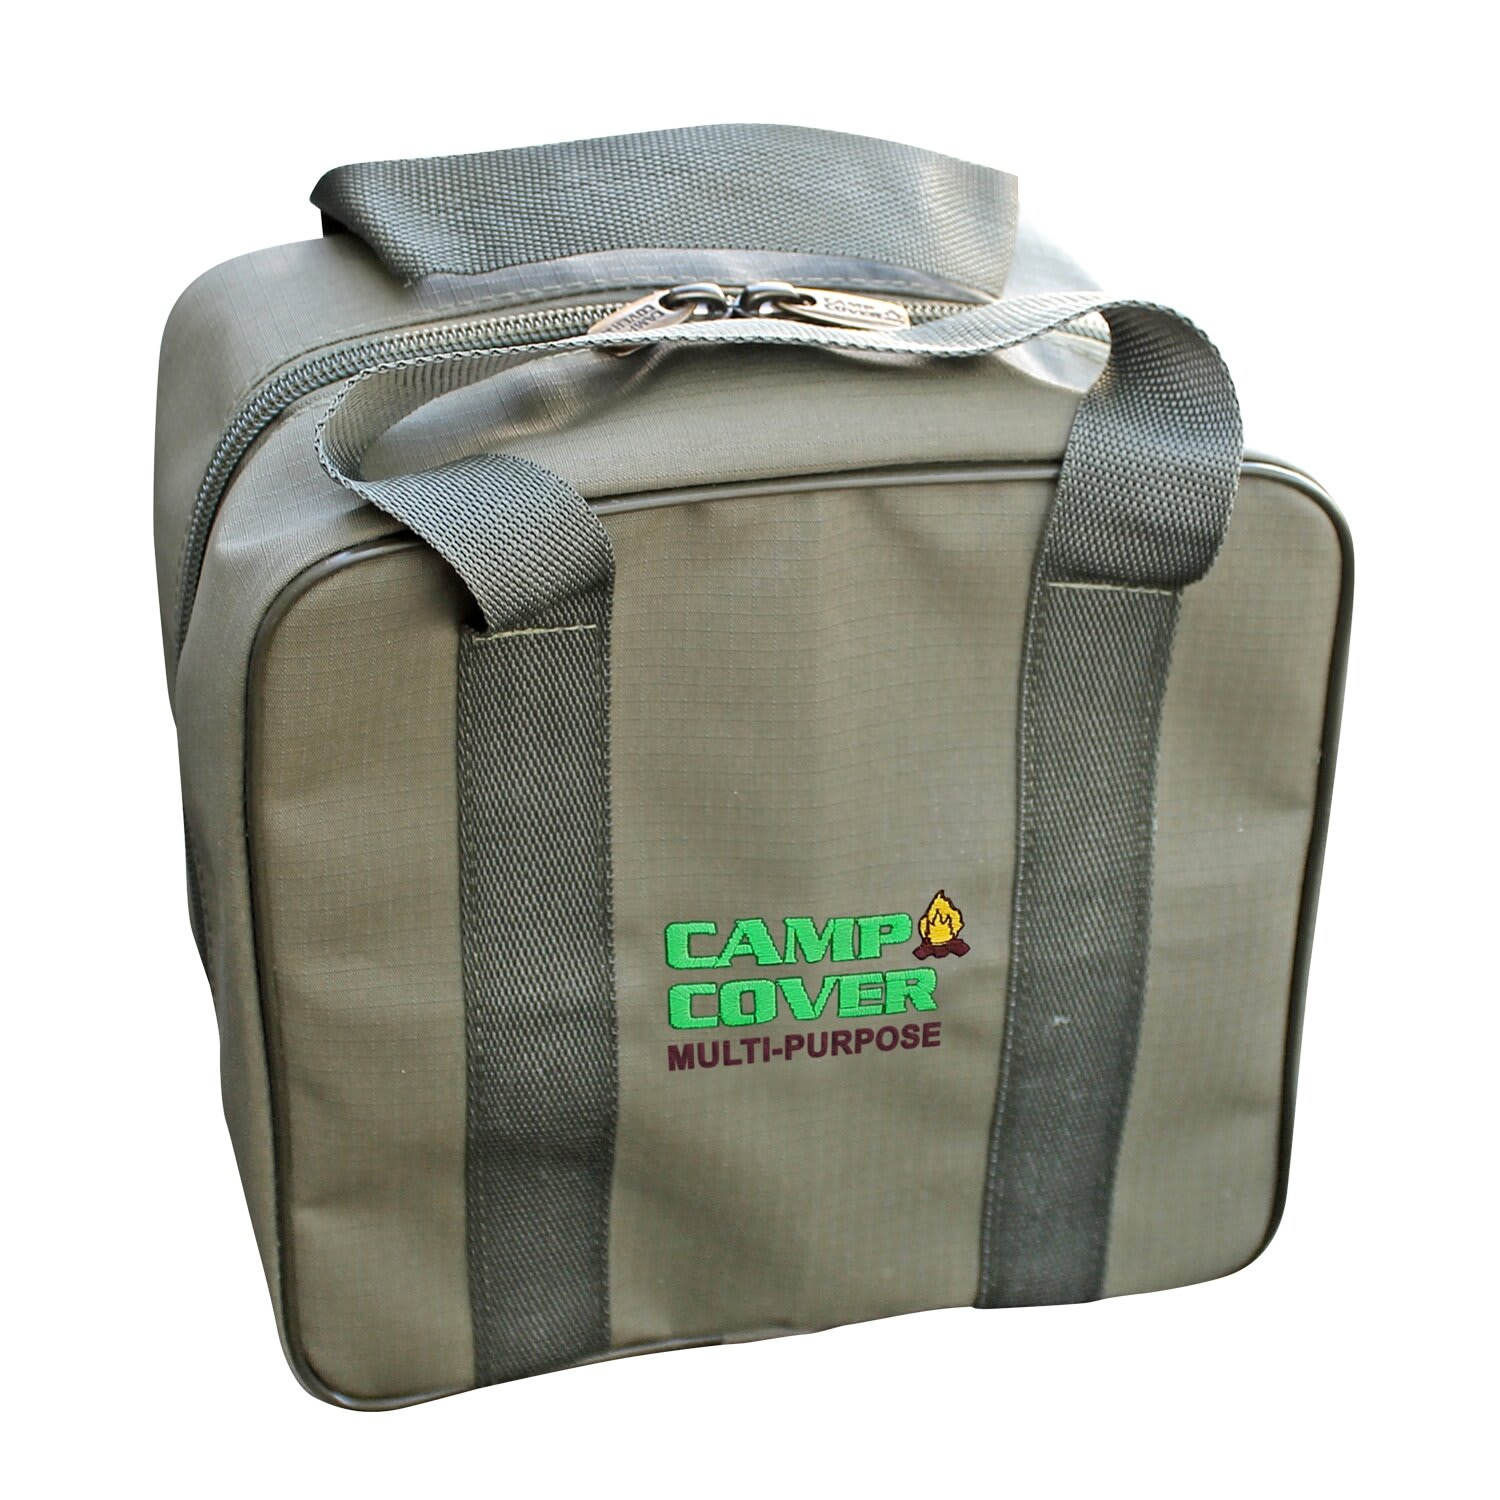 Camp Cover Multi -Purpose Bag